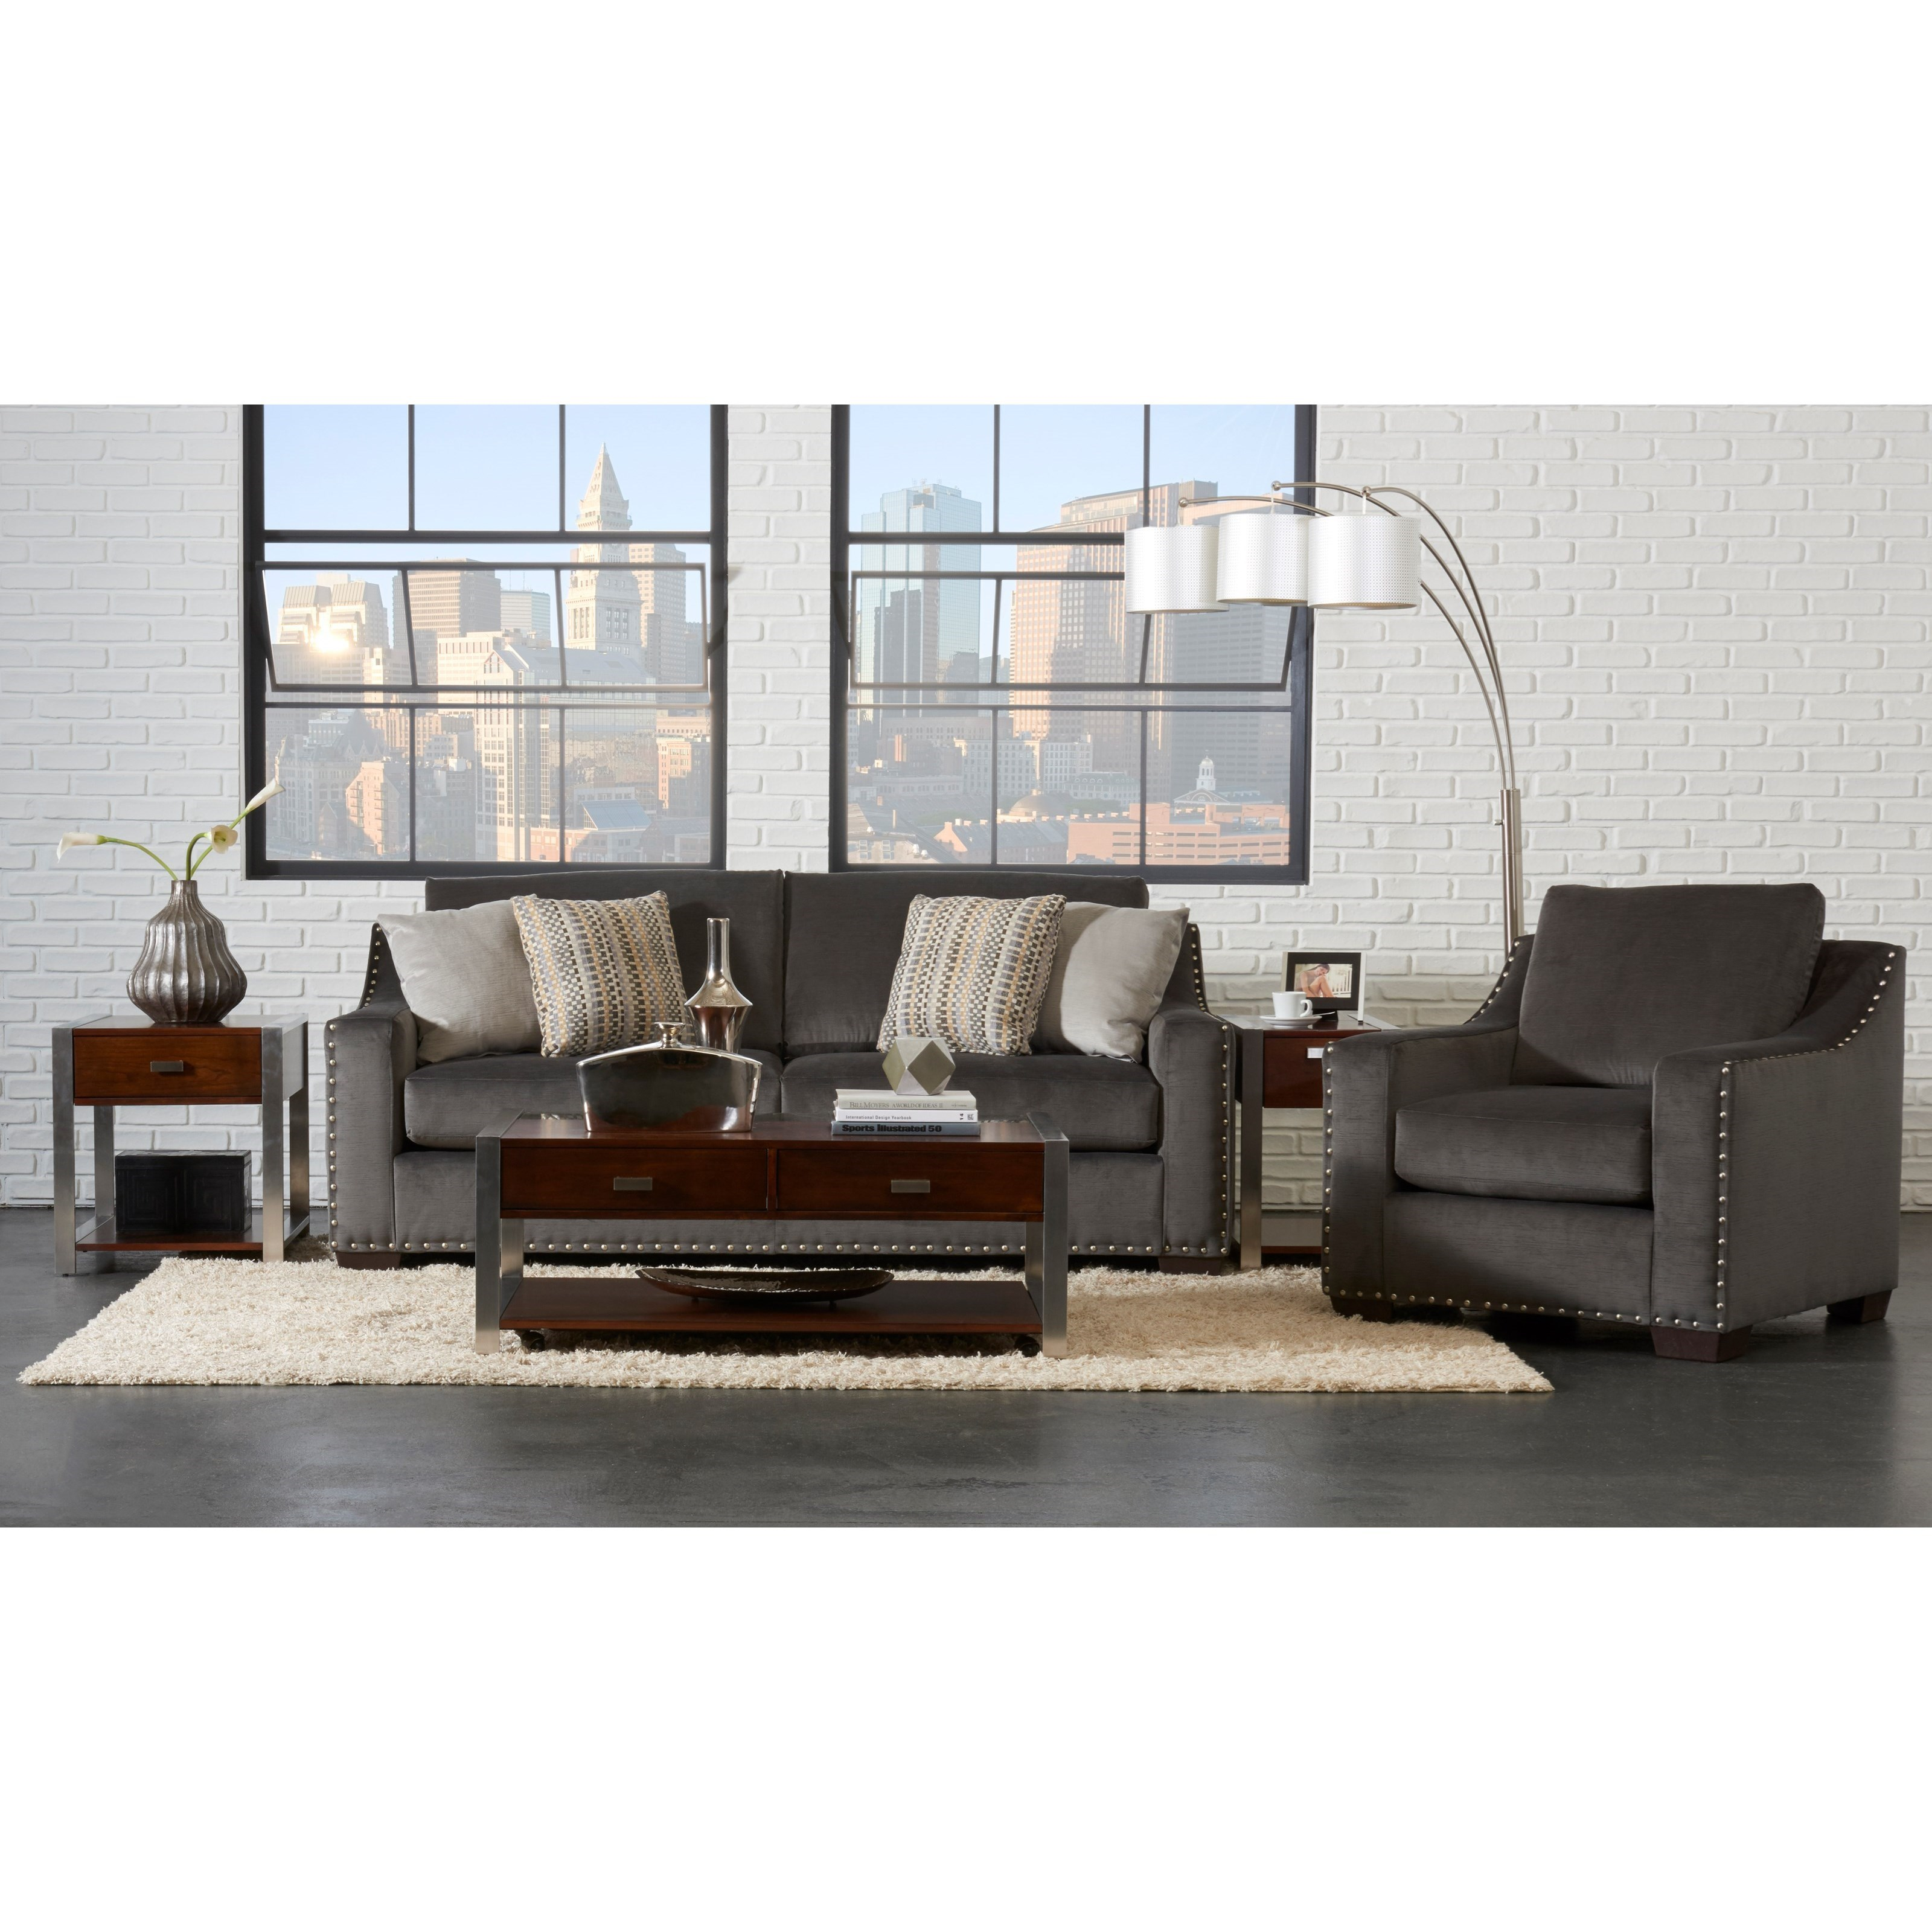 Klaussner Argos Living Room Group